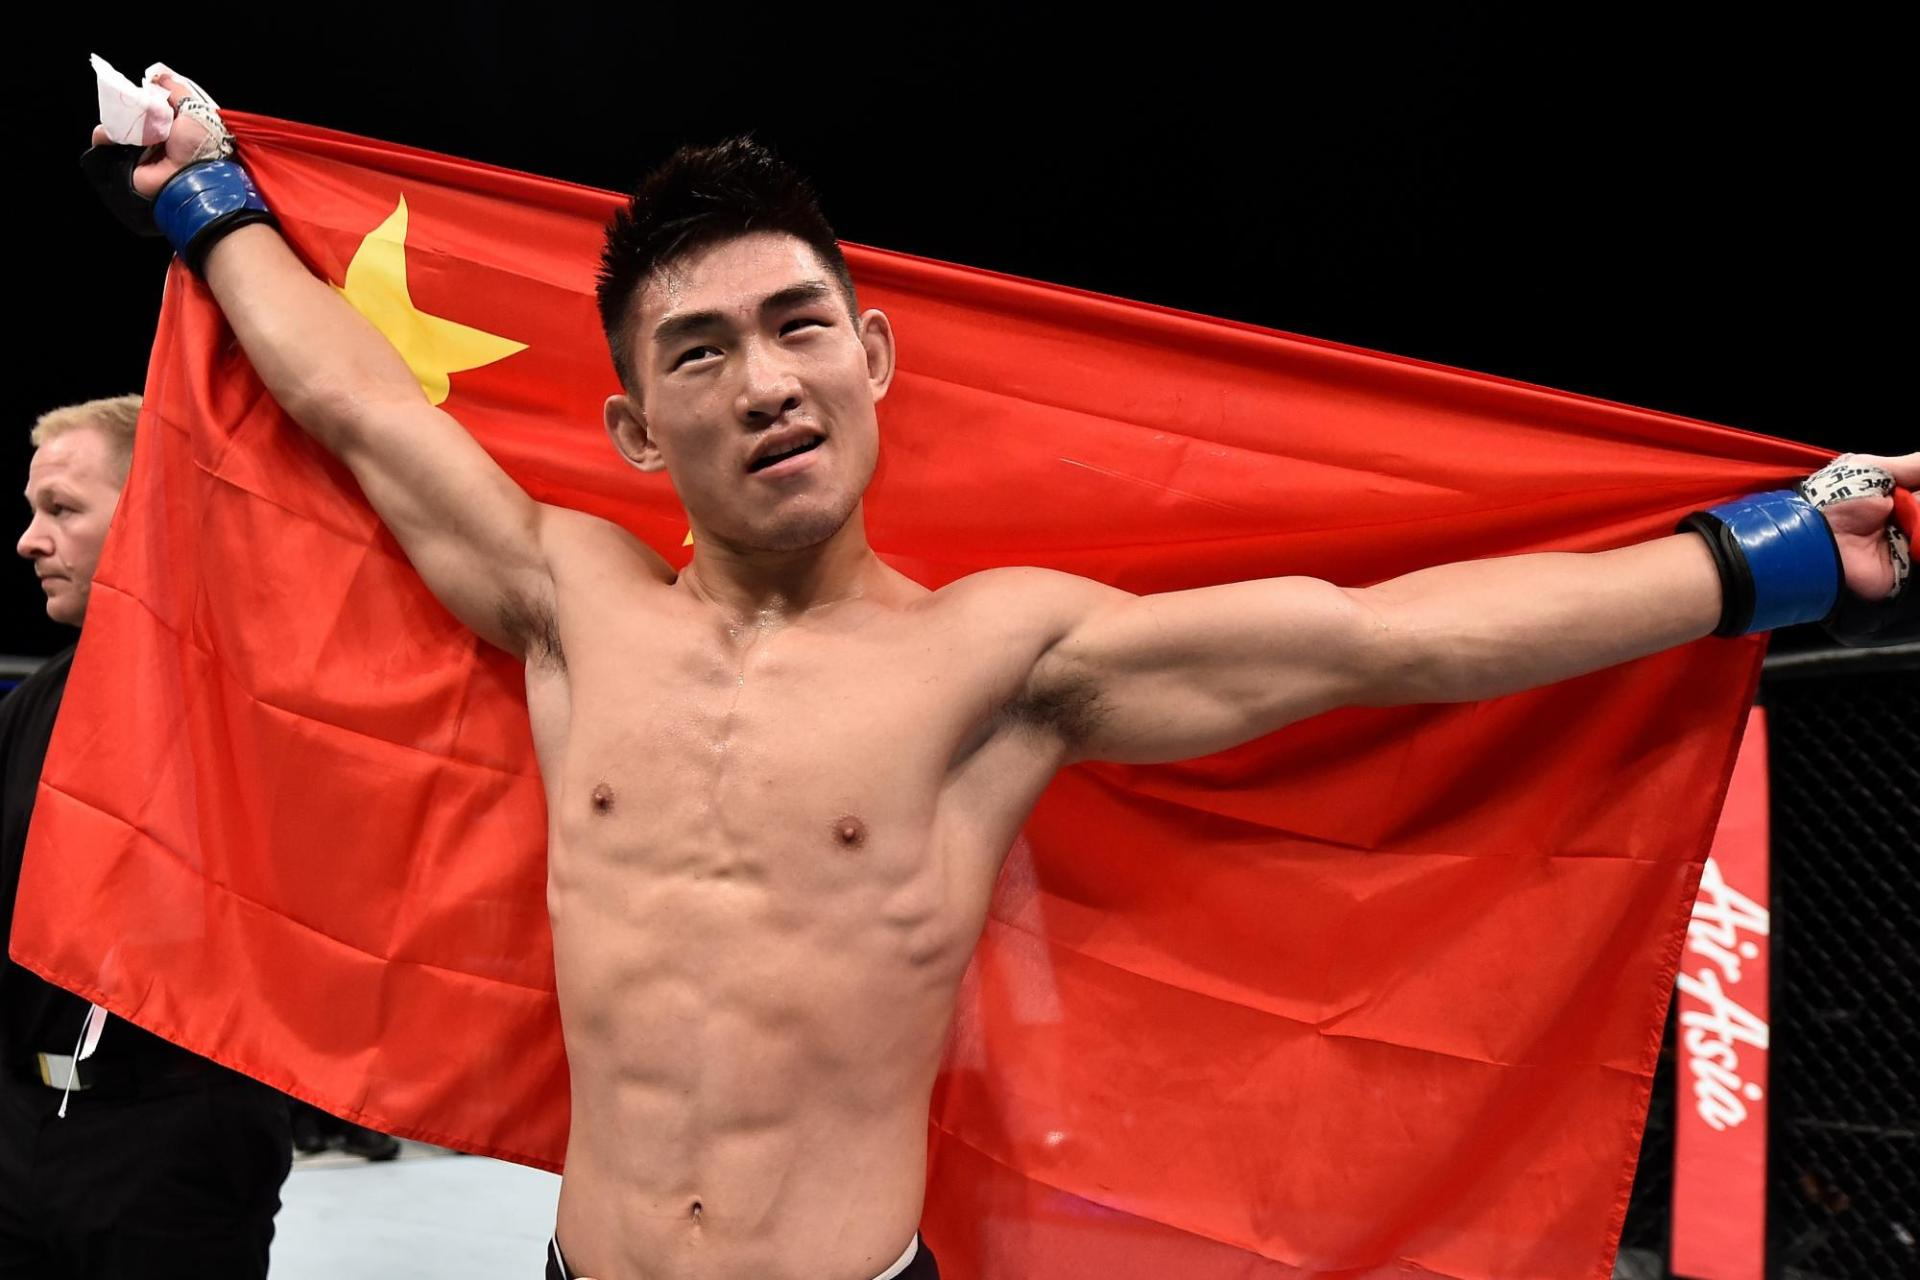 Song Yadong feels Cody Stamann 'doesn't have anything special' - Song